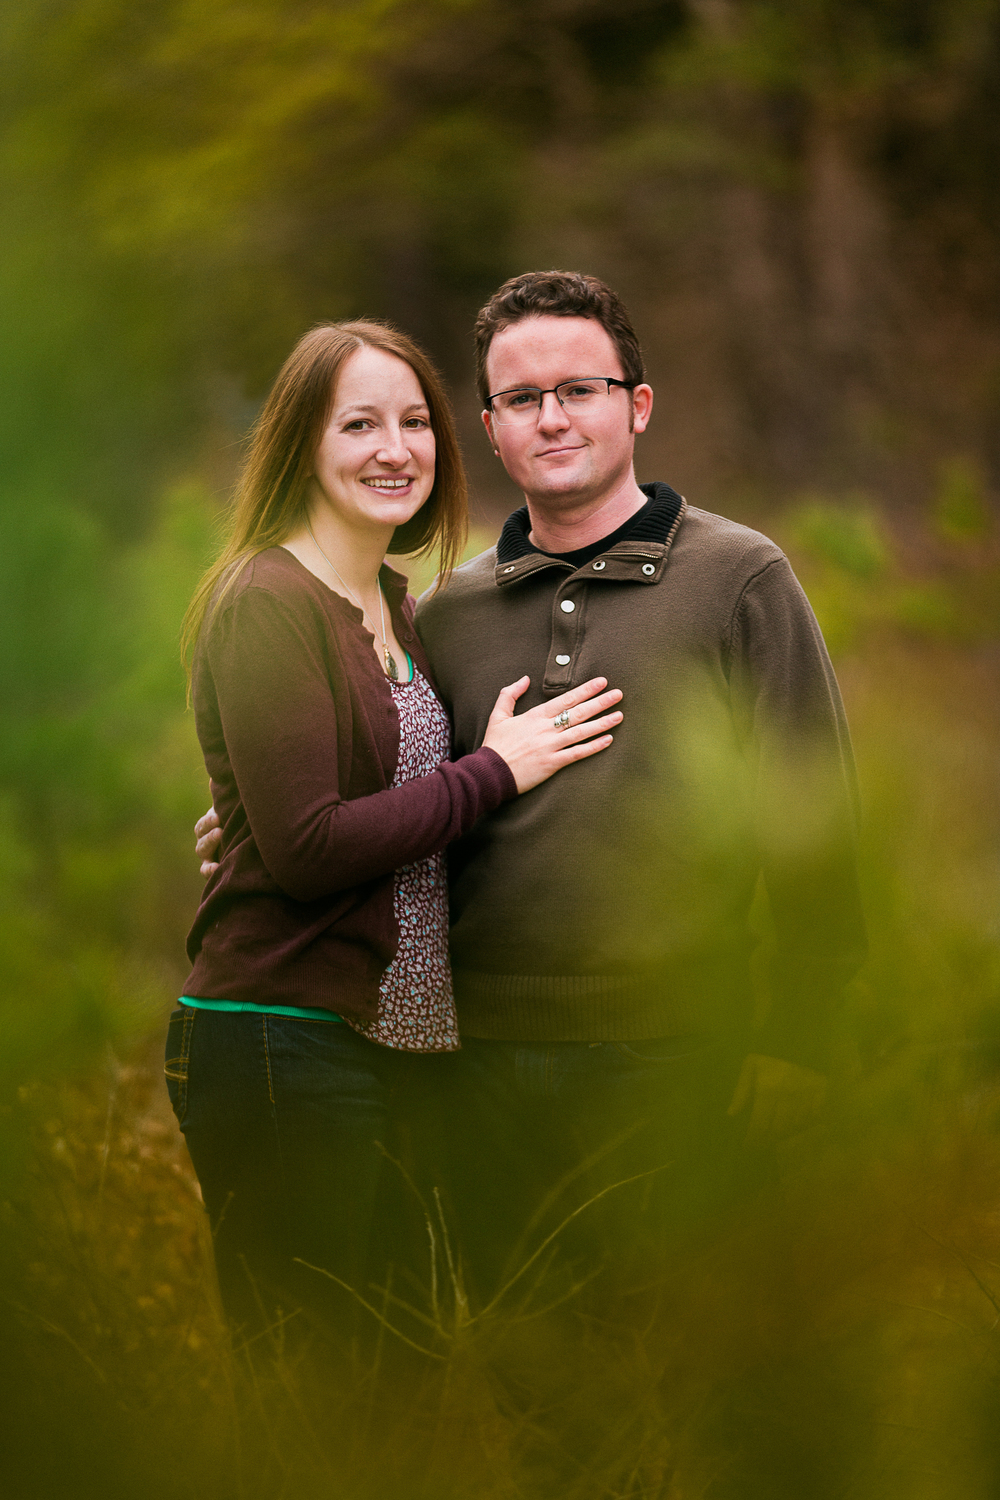 Samantha and Joe Engagement WRH Photography Depford NJ-2.jpg